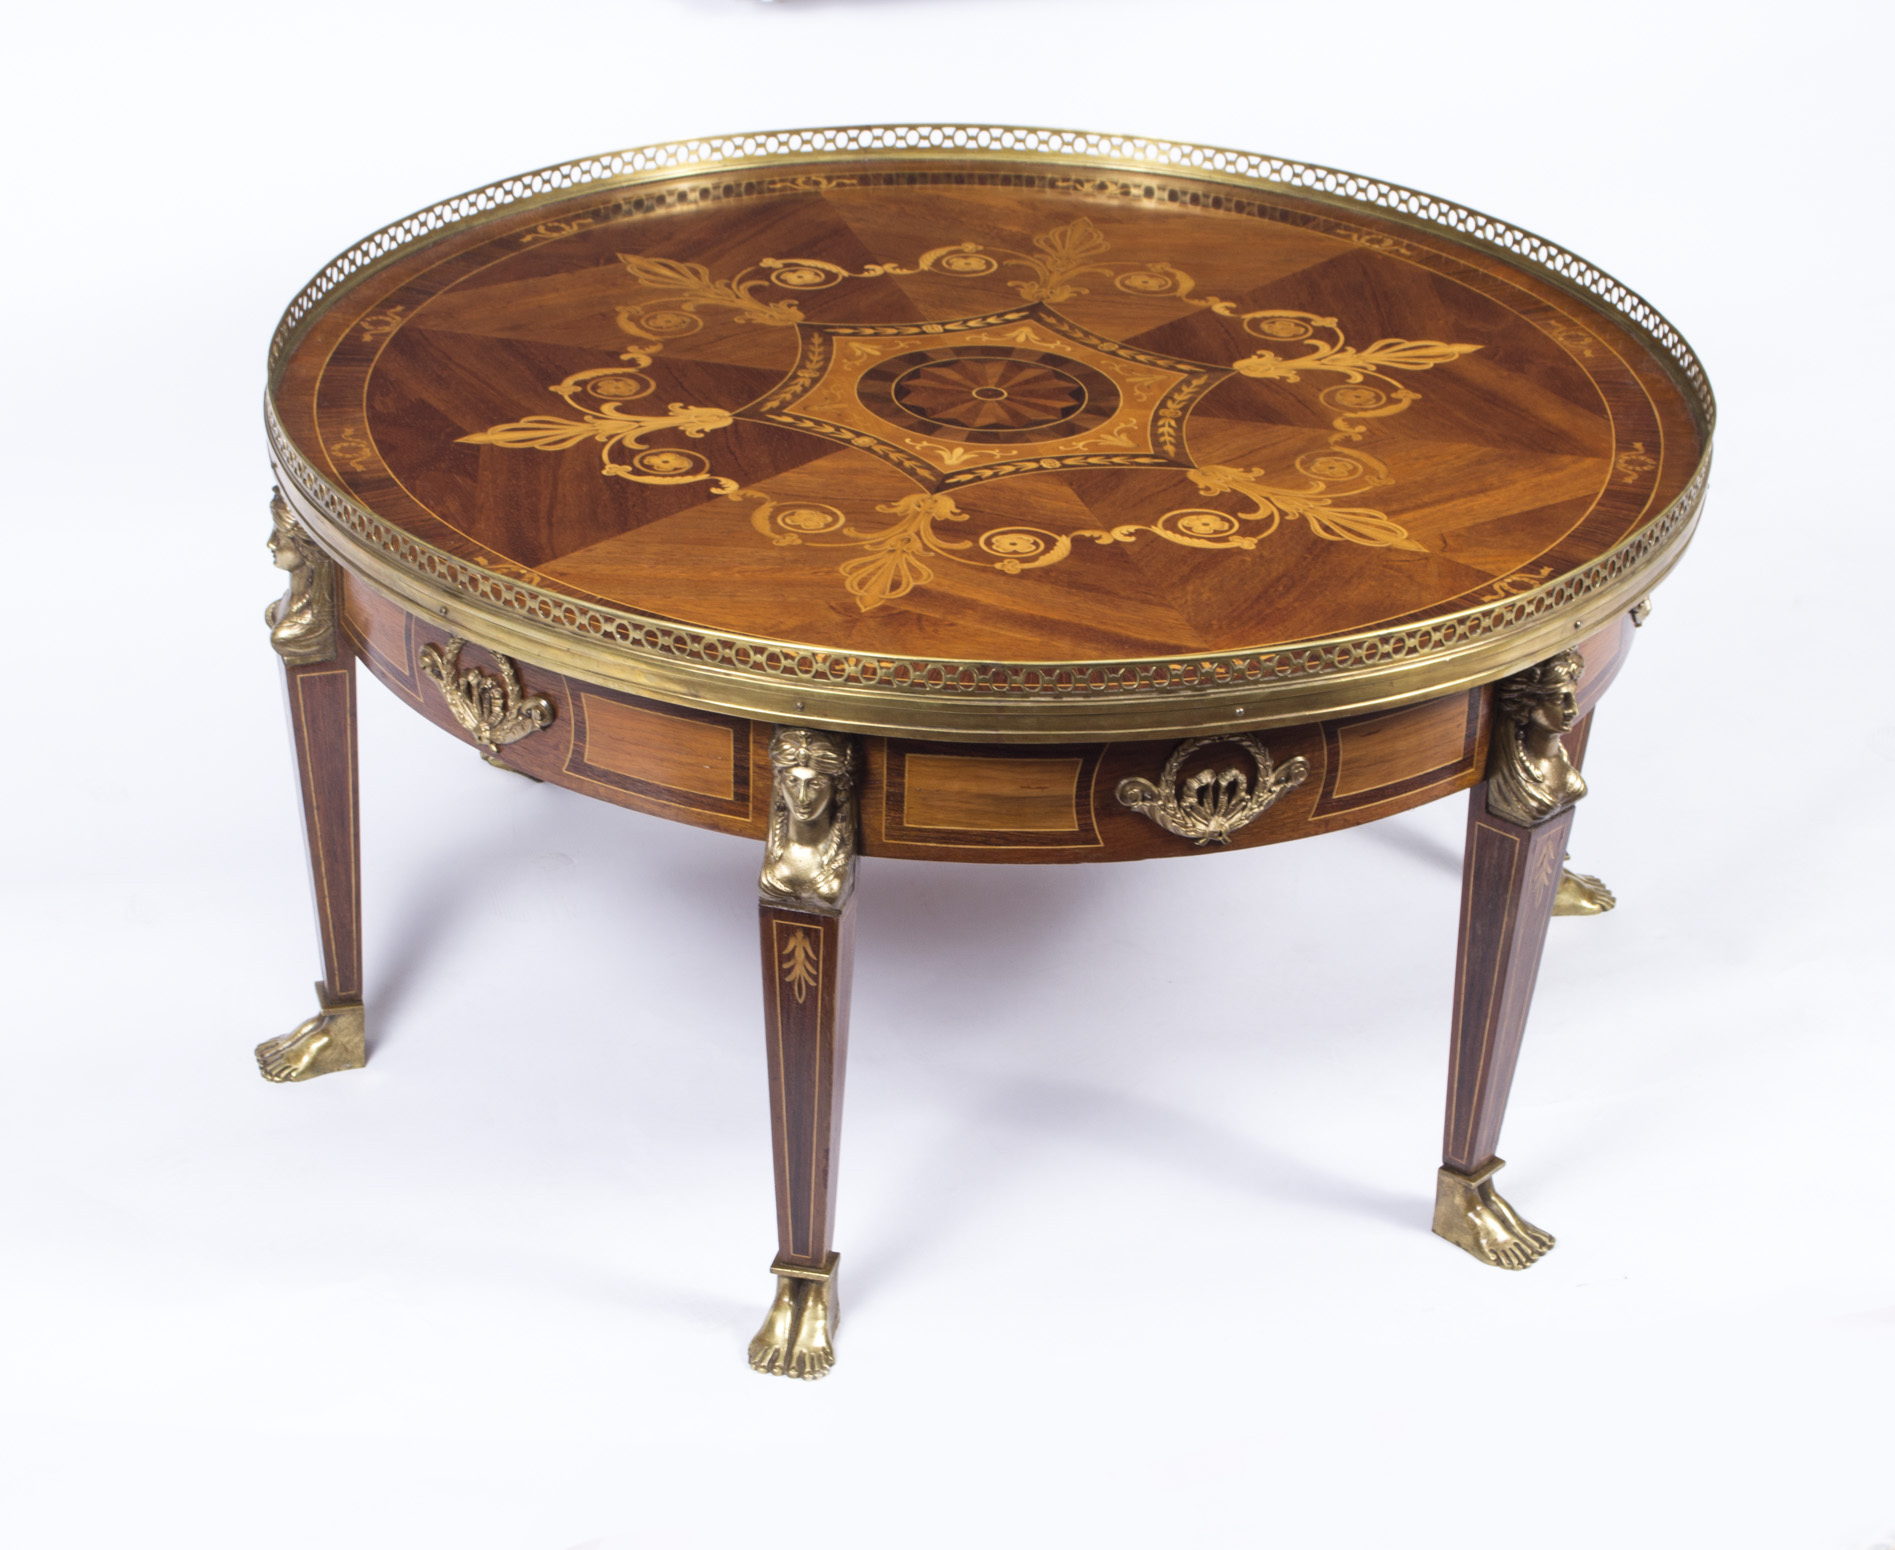 Vintage French Empire Style Marquetry Coffee Table C1970